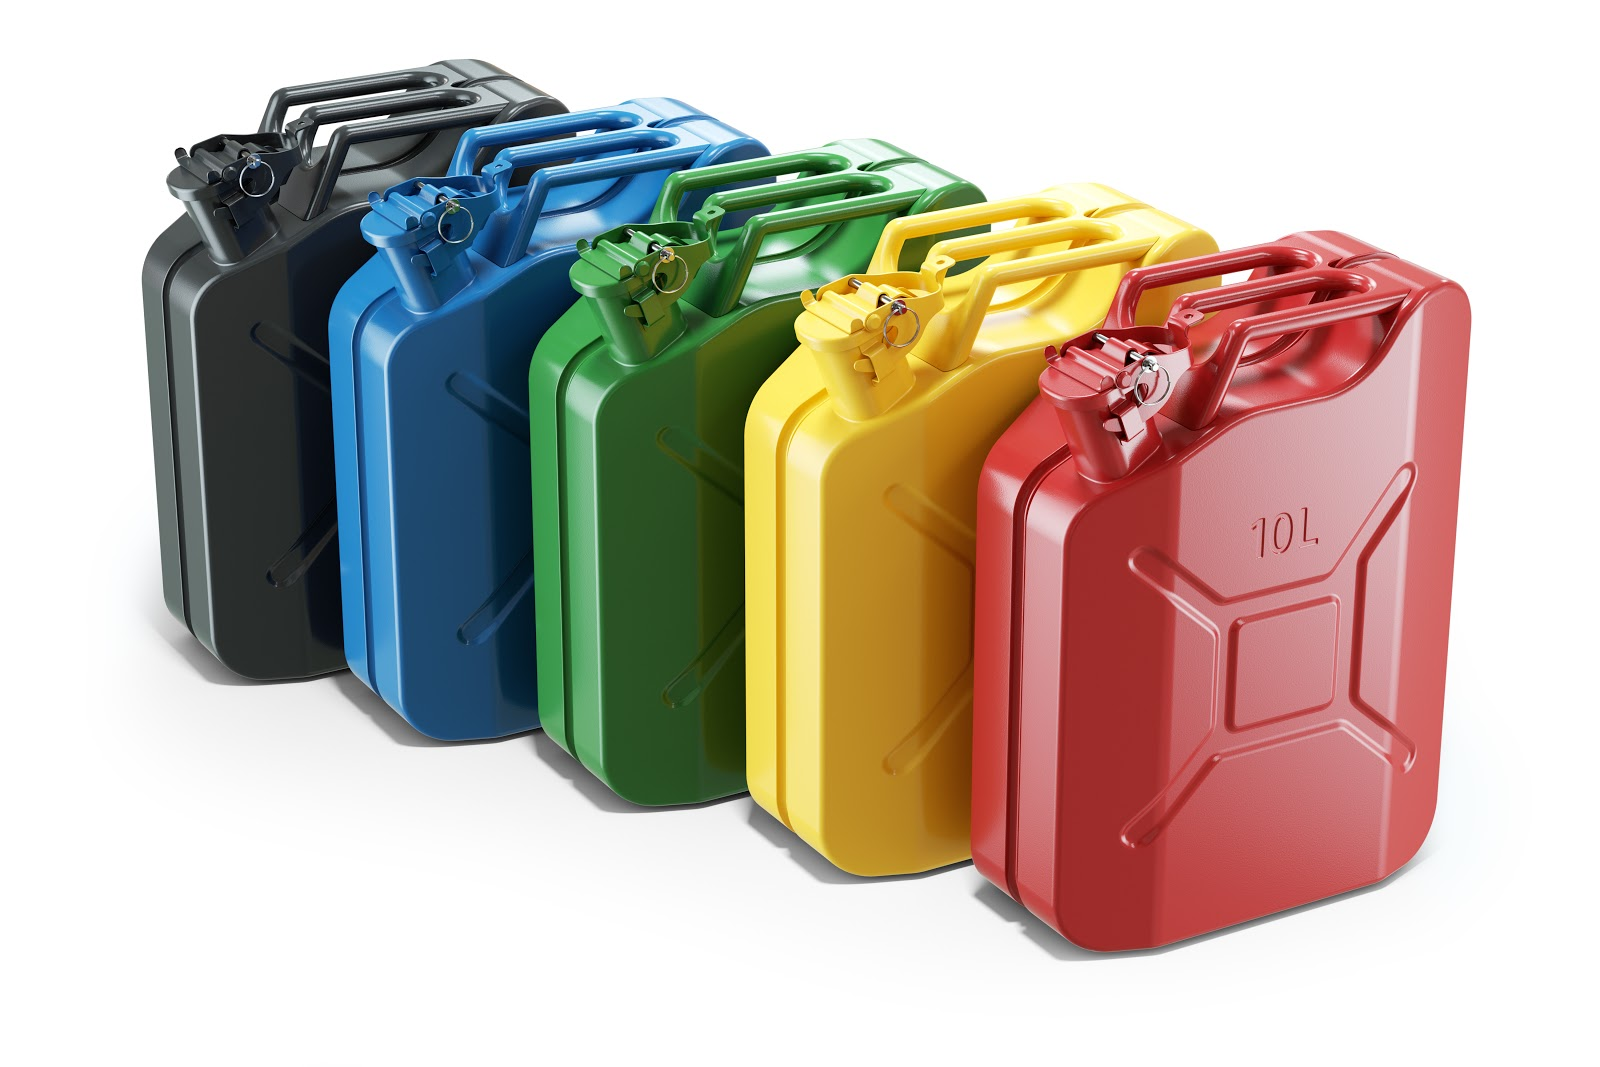 Water storage cans